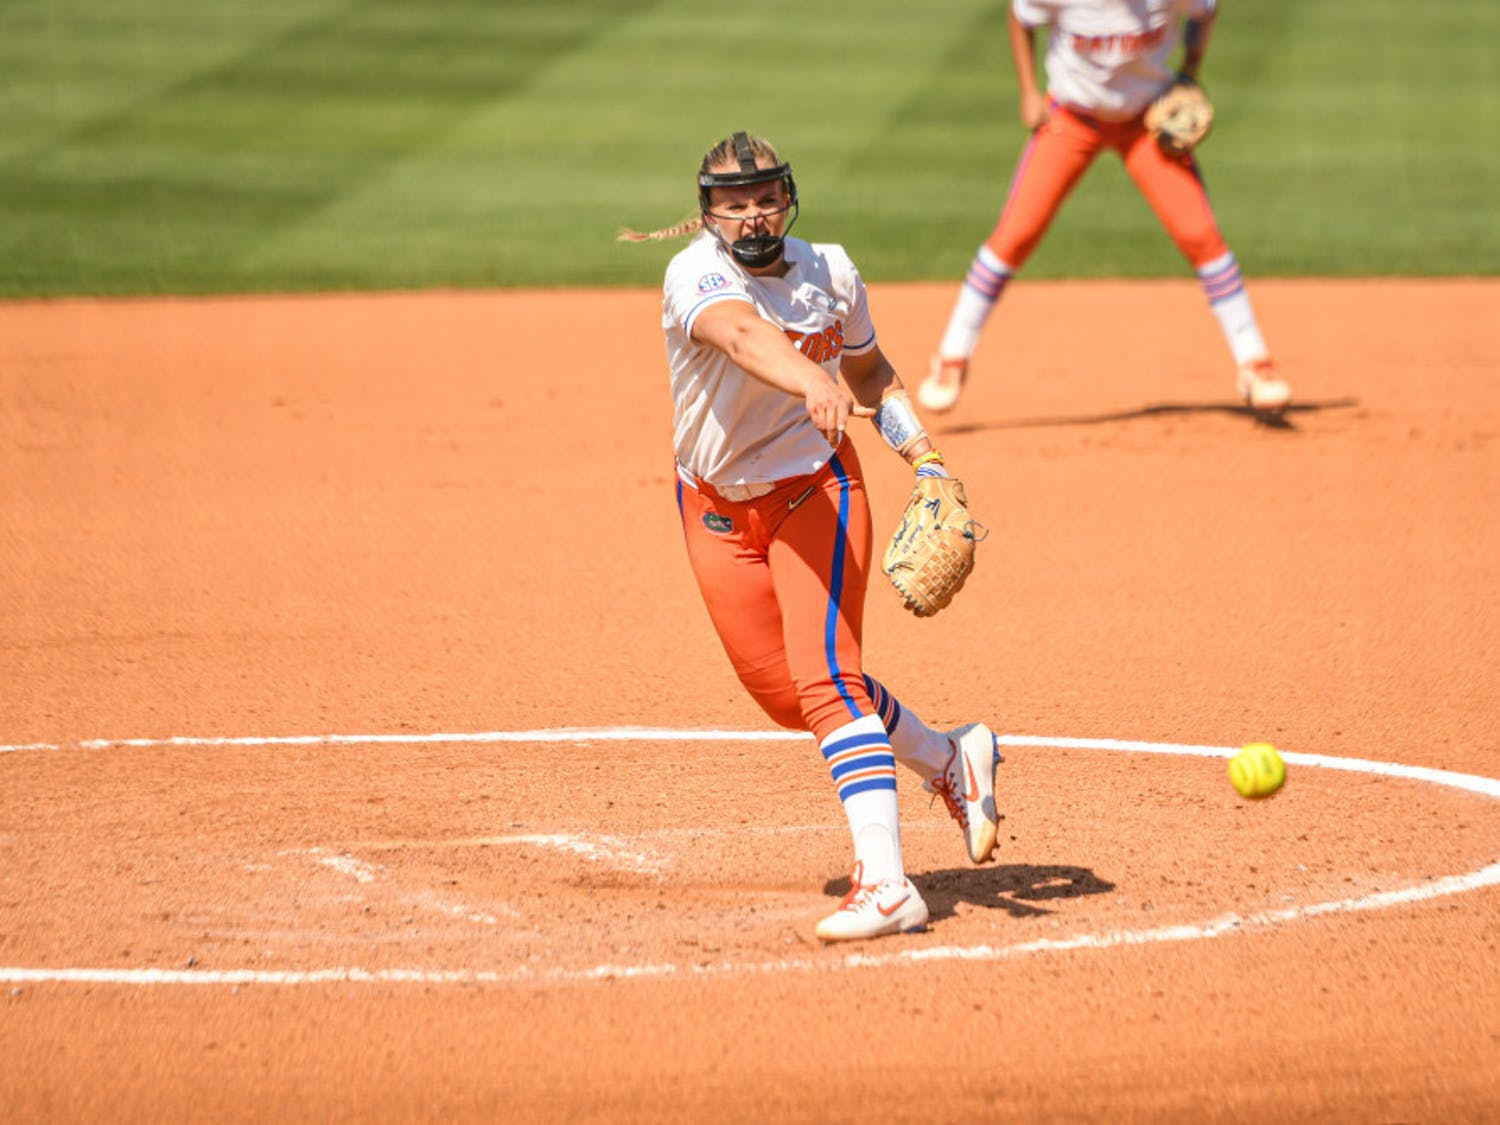 Pitchers Kelly Barnhill and Natalie Lugo pitched a combined no-hitter as Florida advanced to the Gainesville Regional Final.